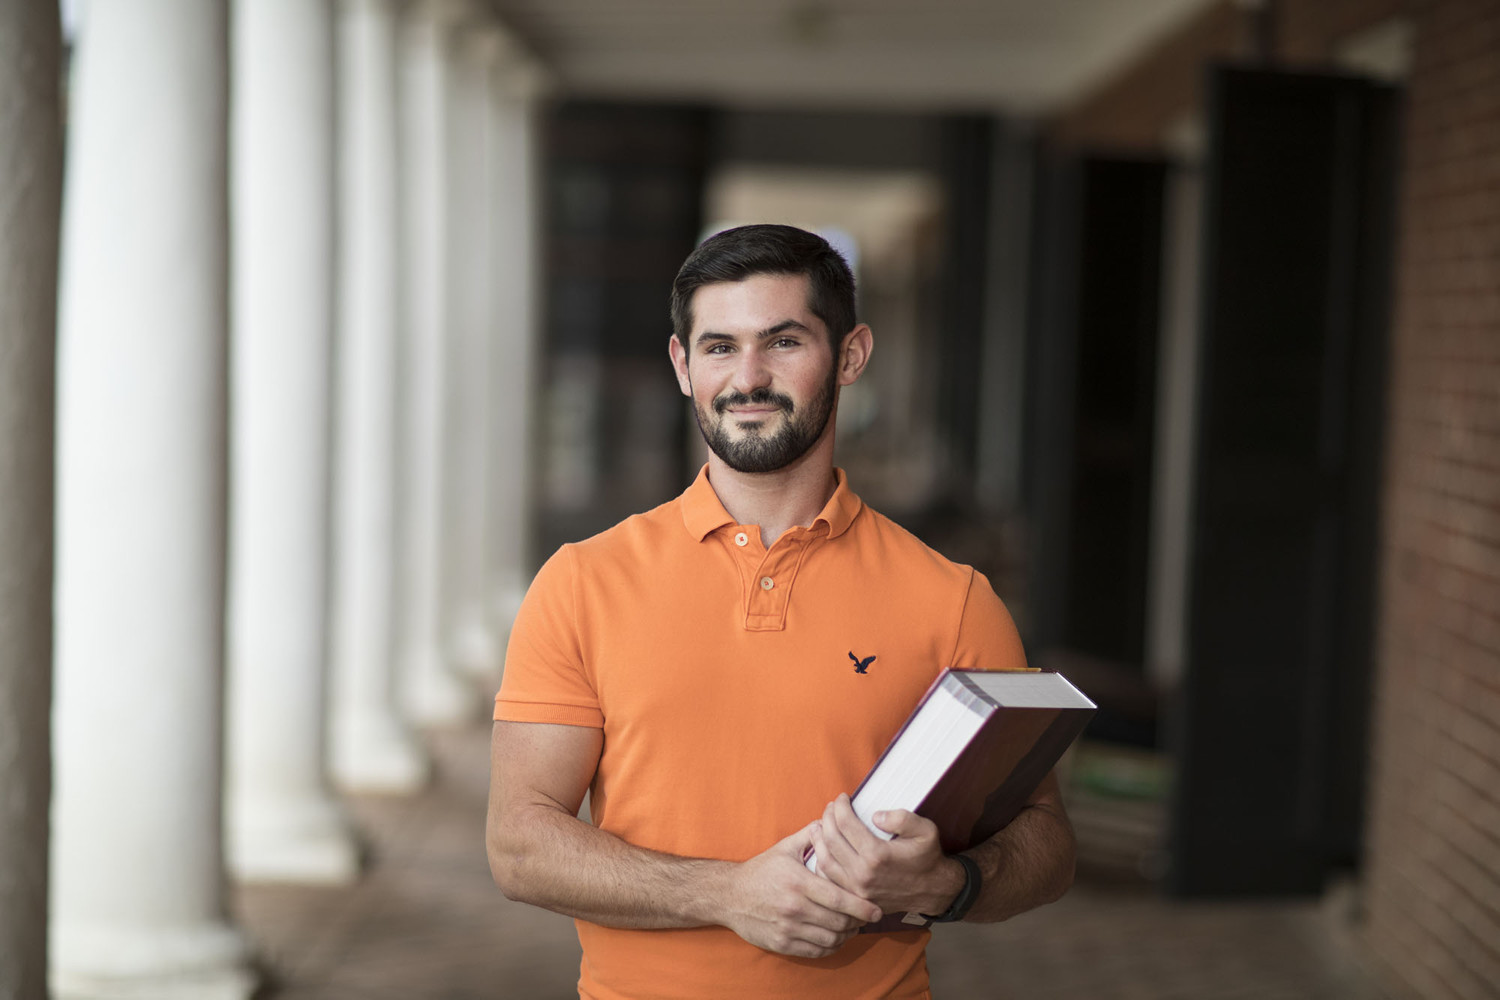 Nursing student Josh Moore's passion for health goes beyond caring for patients on the hospital floor. The certified INSANITY instructor also believes in leading by example when it comes to both mental and physical well-being.